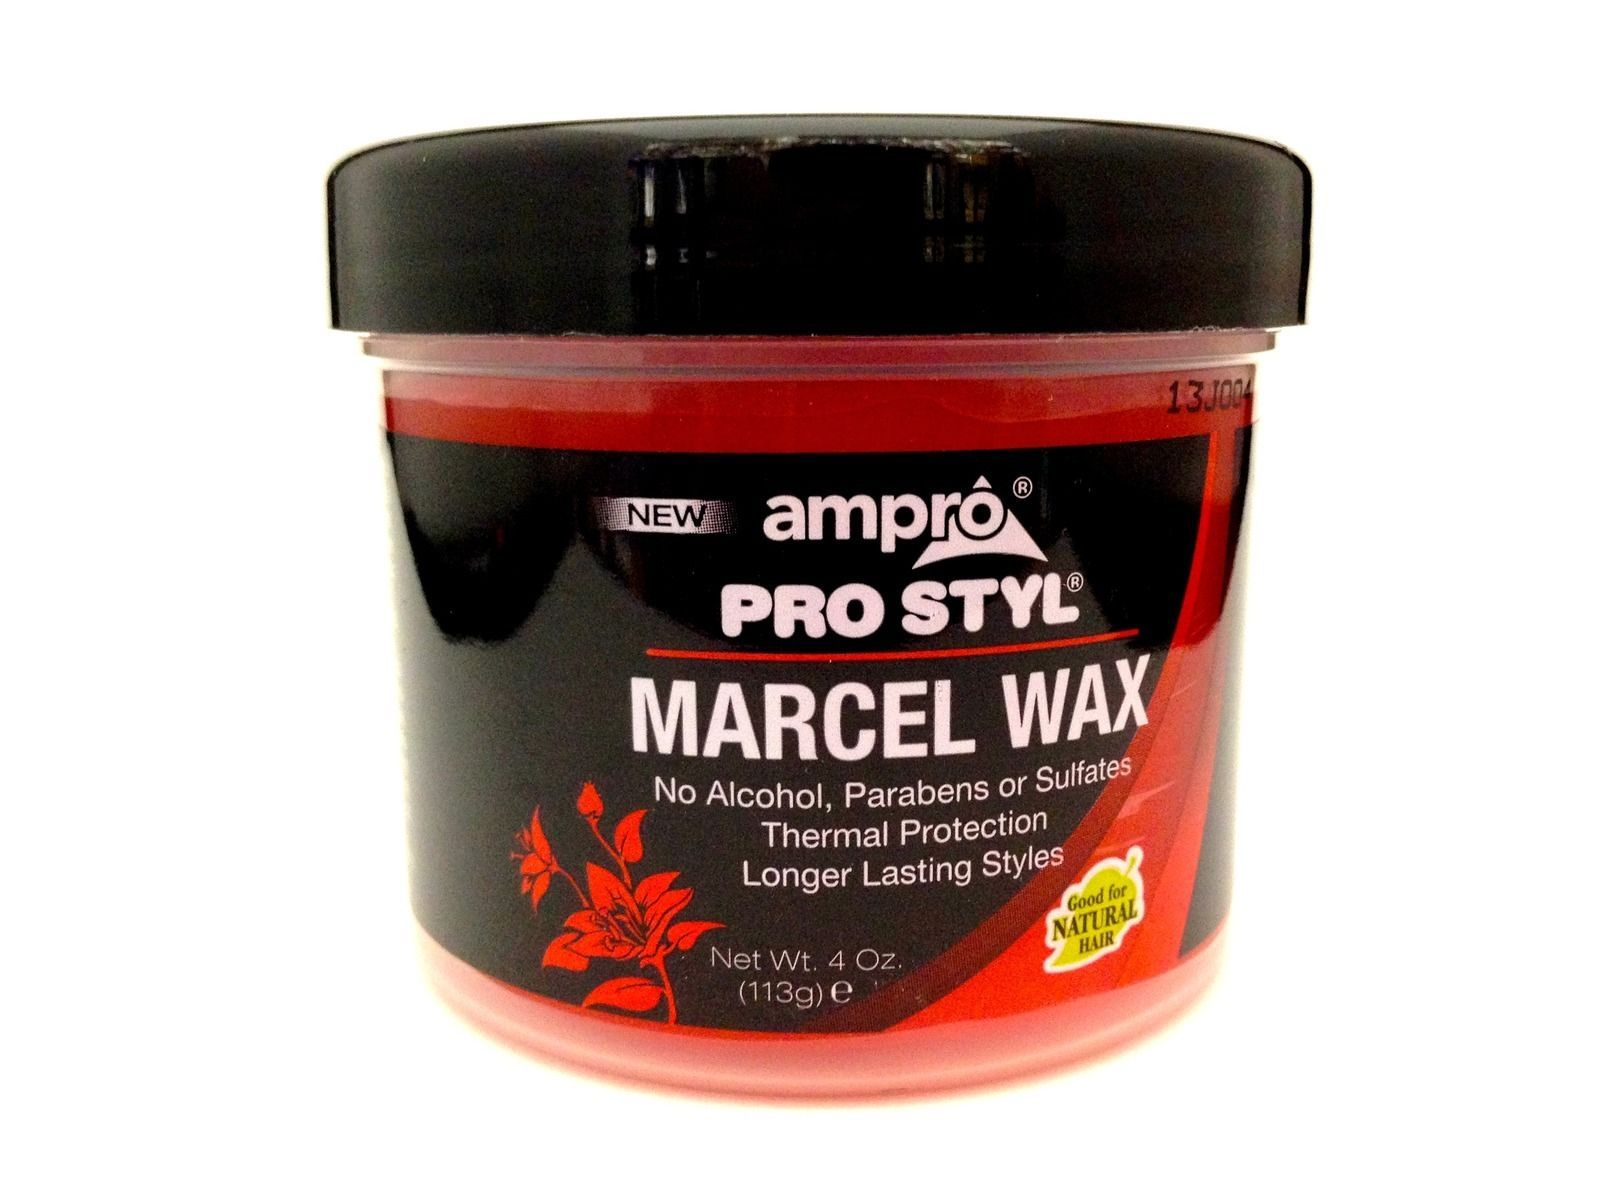 AMPRO PRO STYL MARCEL WAX NO ALCOHOL PARABEN OR SULFATES THERMAL PROTECTION 12oz